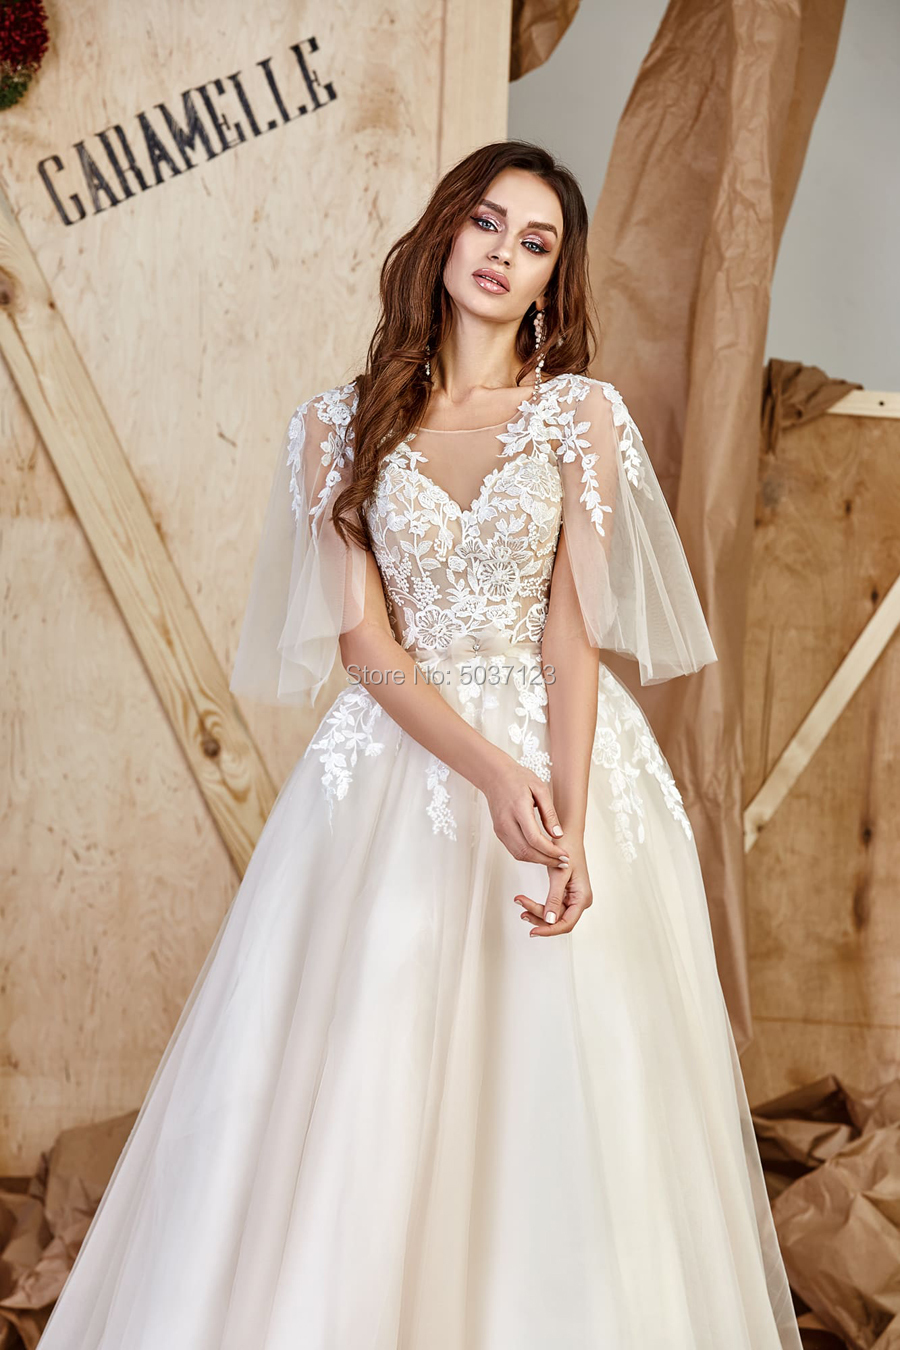 Image 3 - Half Sleeves Wedding Dresses Lace Appliques Scoop Open Back Floor Length Court Train Tulle Vestido De Noiva Bridal Wedding Gown-in Wedding Dresses from Weddings & Events